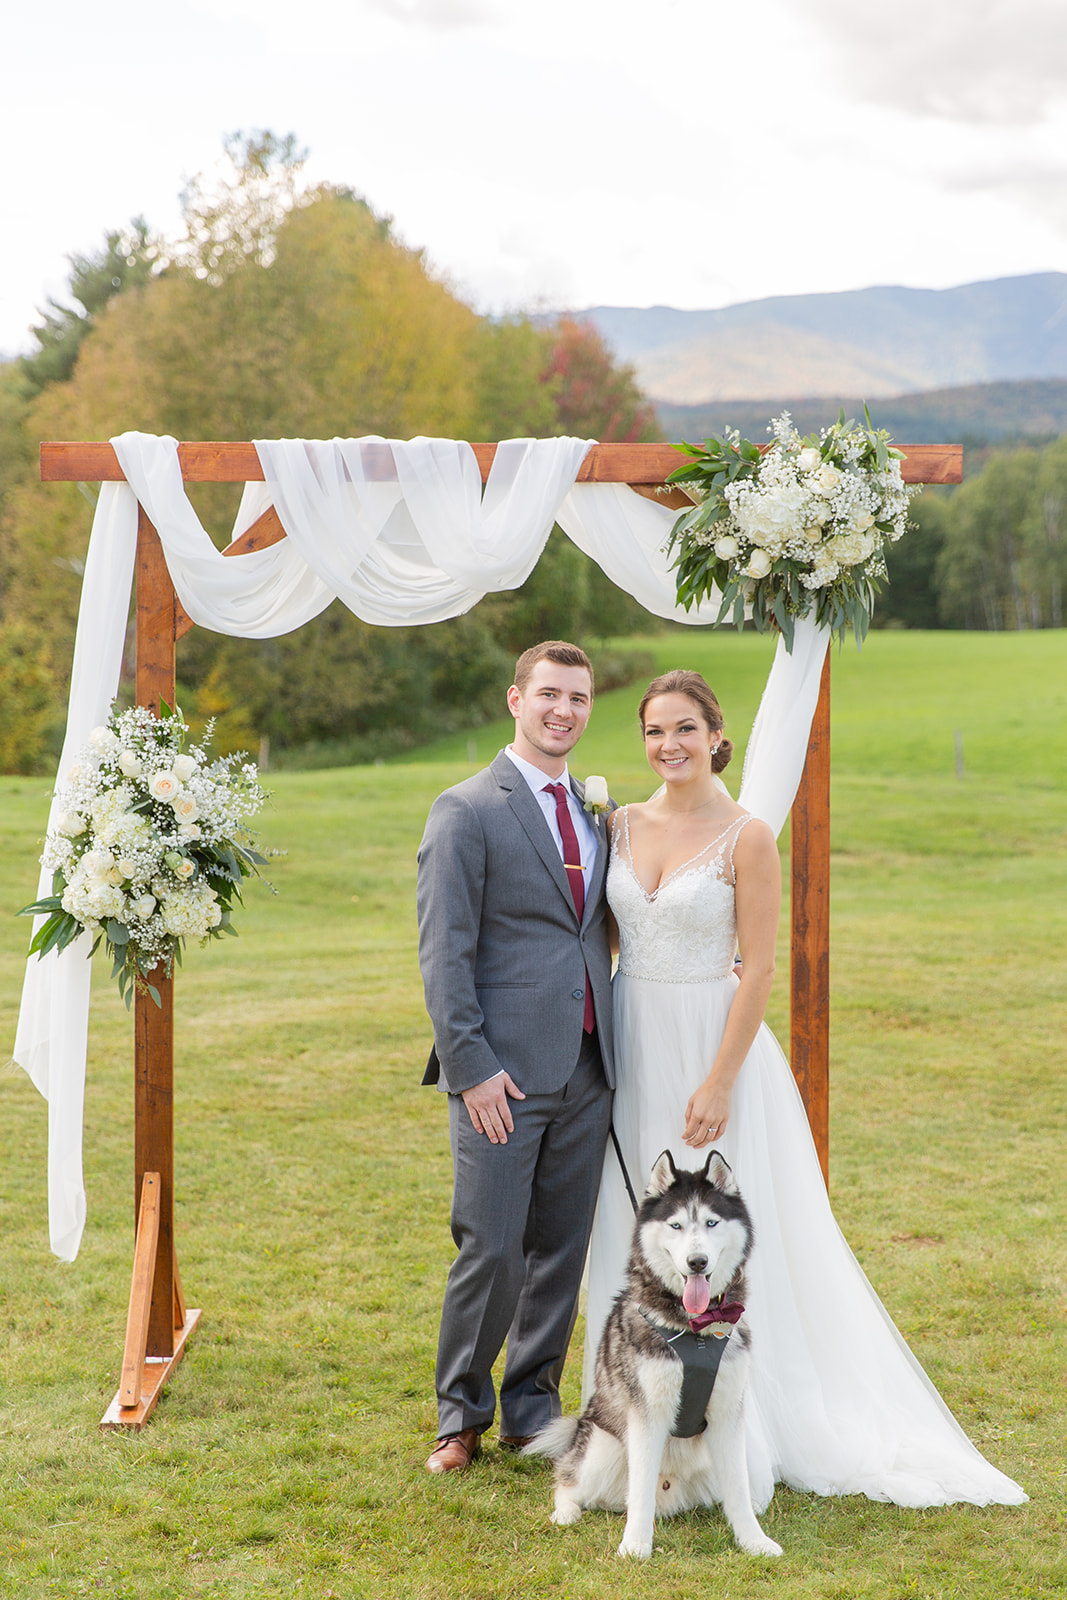 Bride and groom pose under wedding arch with their dog on wedding day